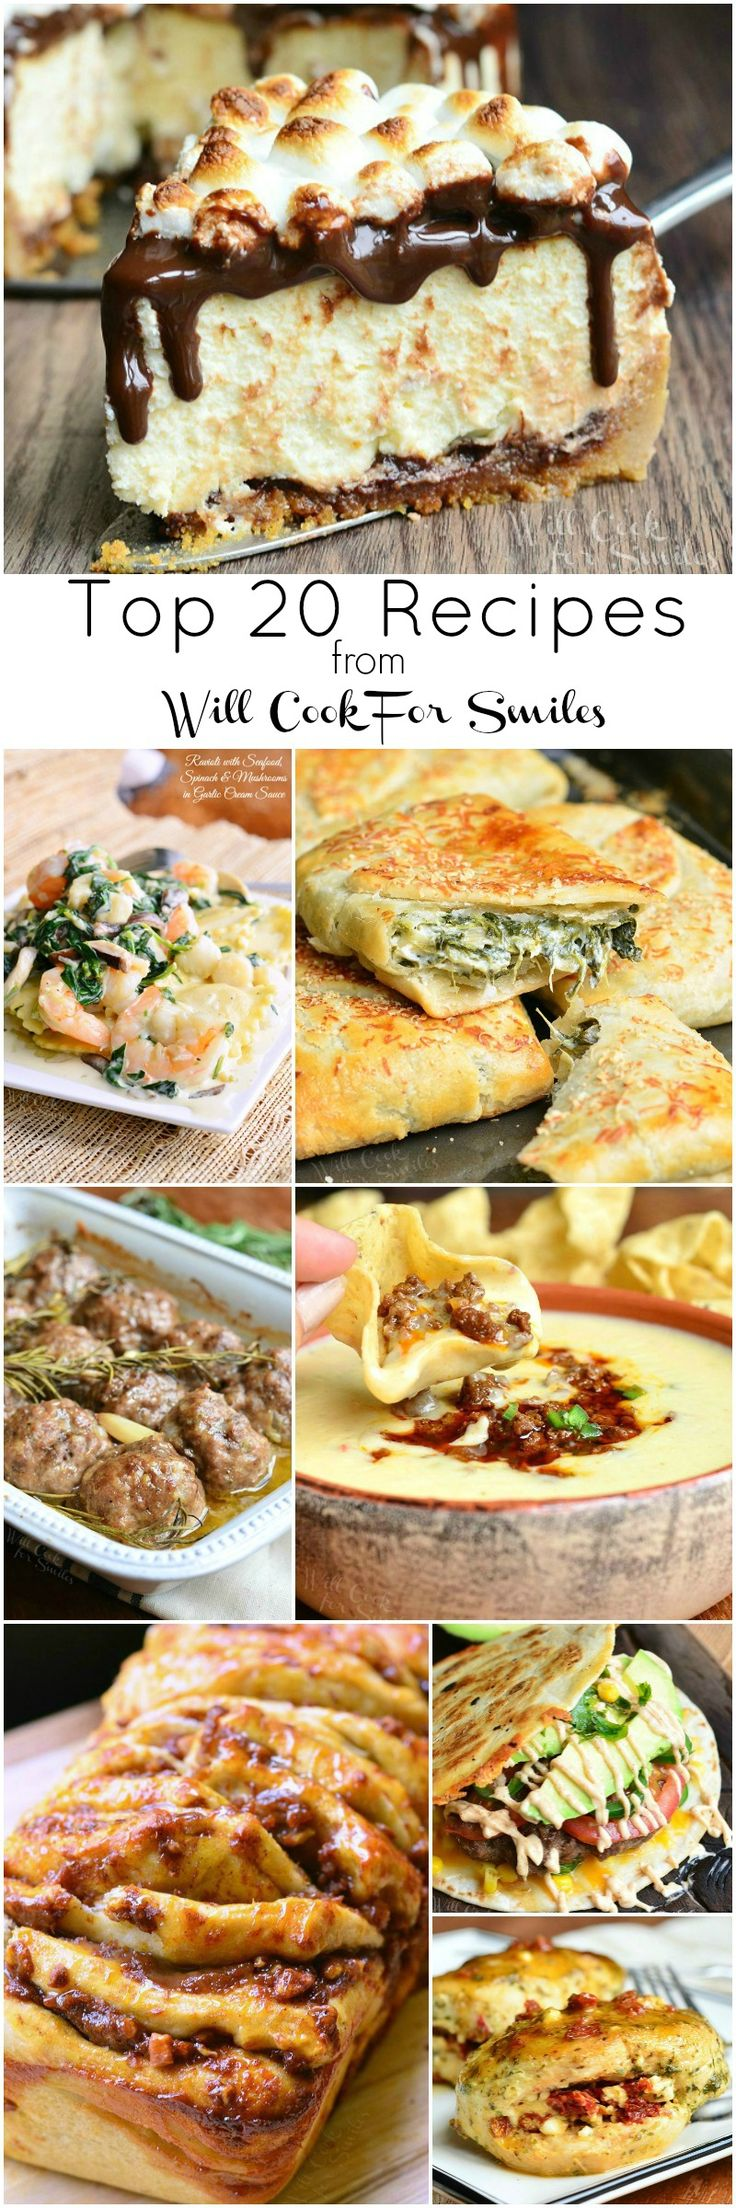 Top 20 Recipes of 2015 from Will Cook For Smiles – The Most Popular Sweet and Savory Recipes!